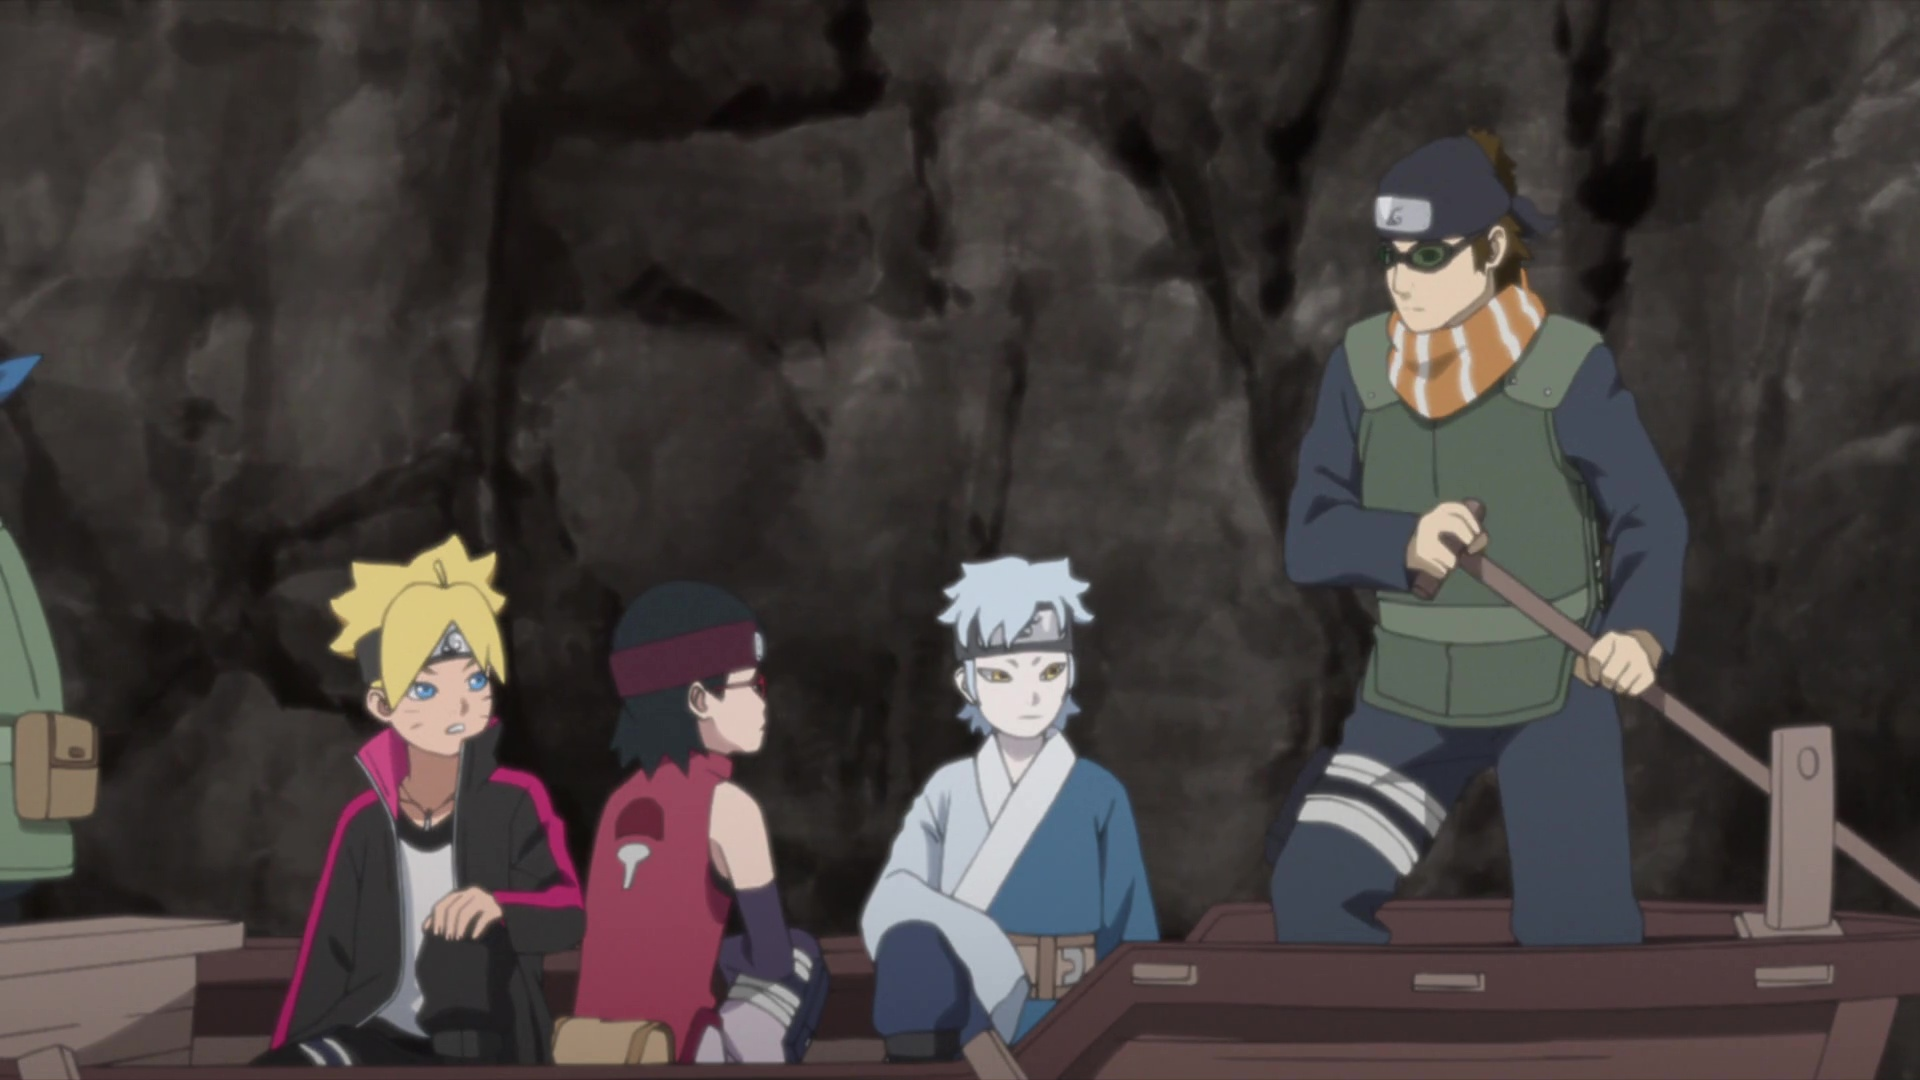 Boruto Episode 161 Release Date, Preview and Spoilers